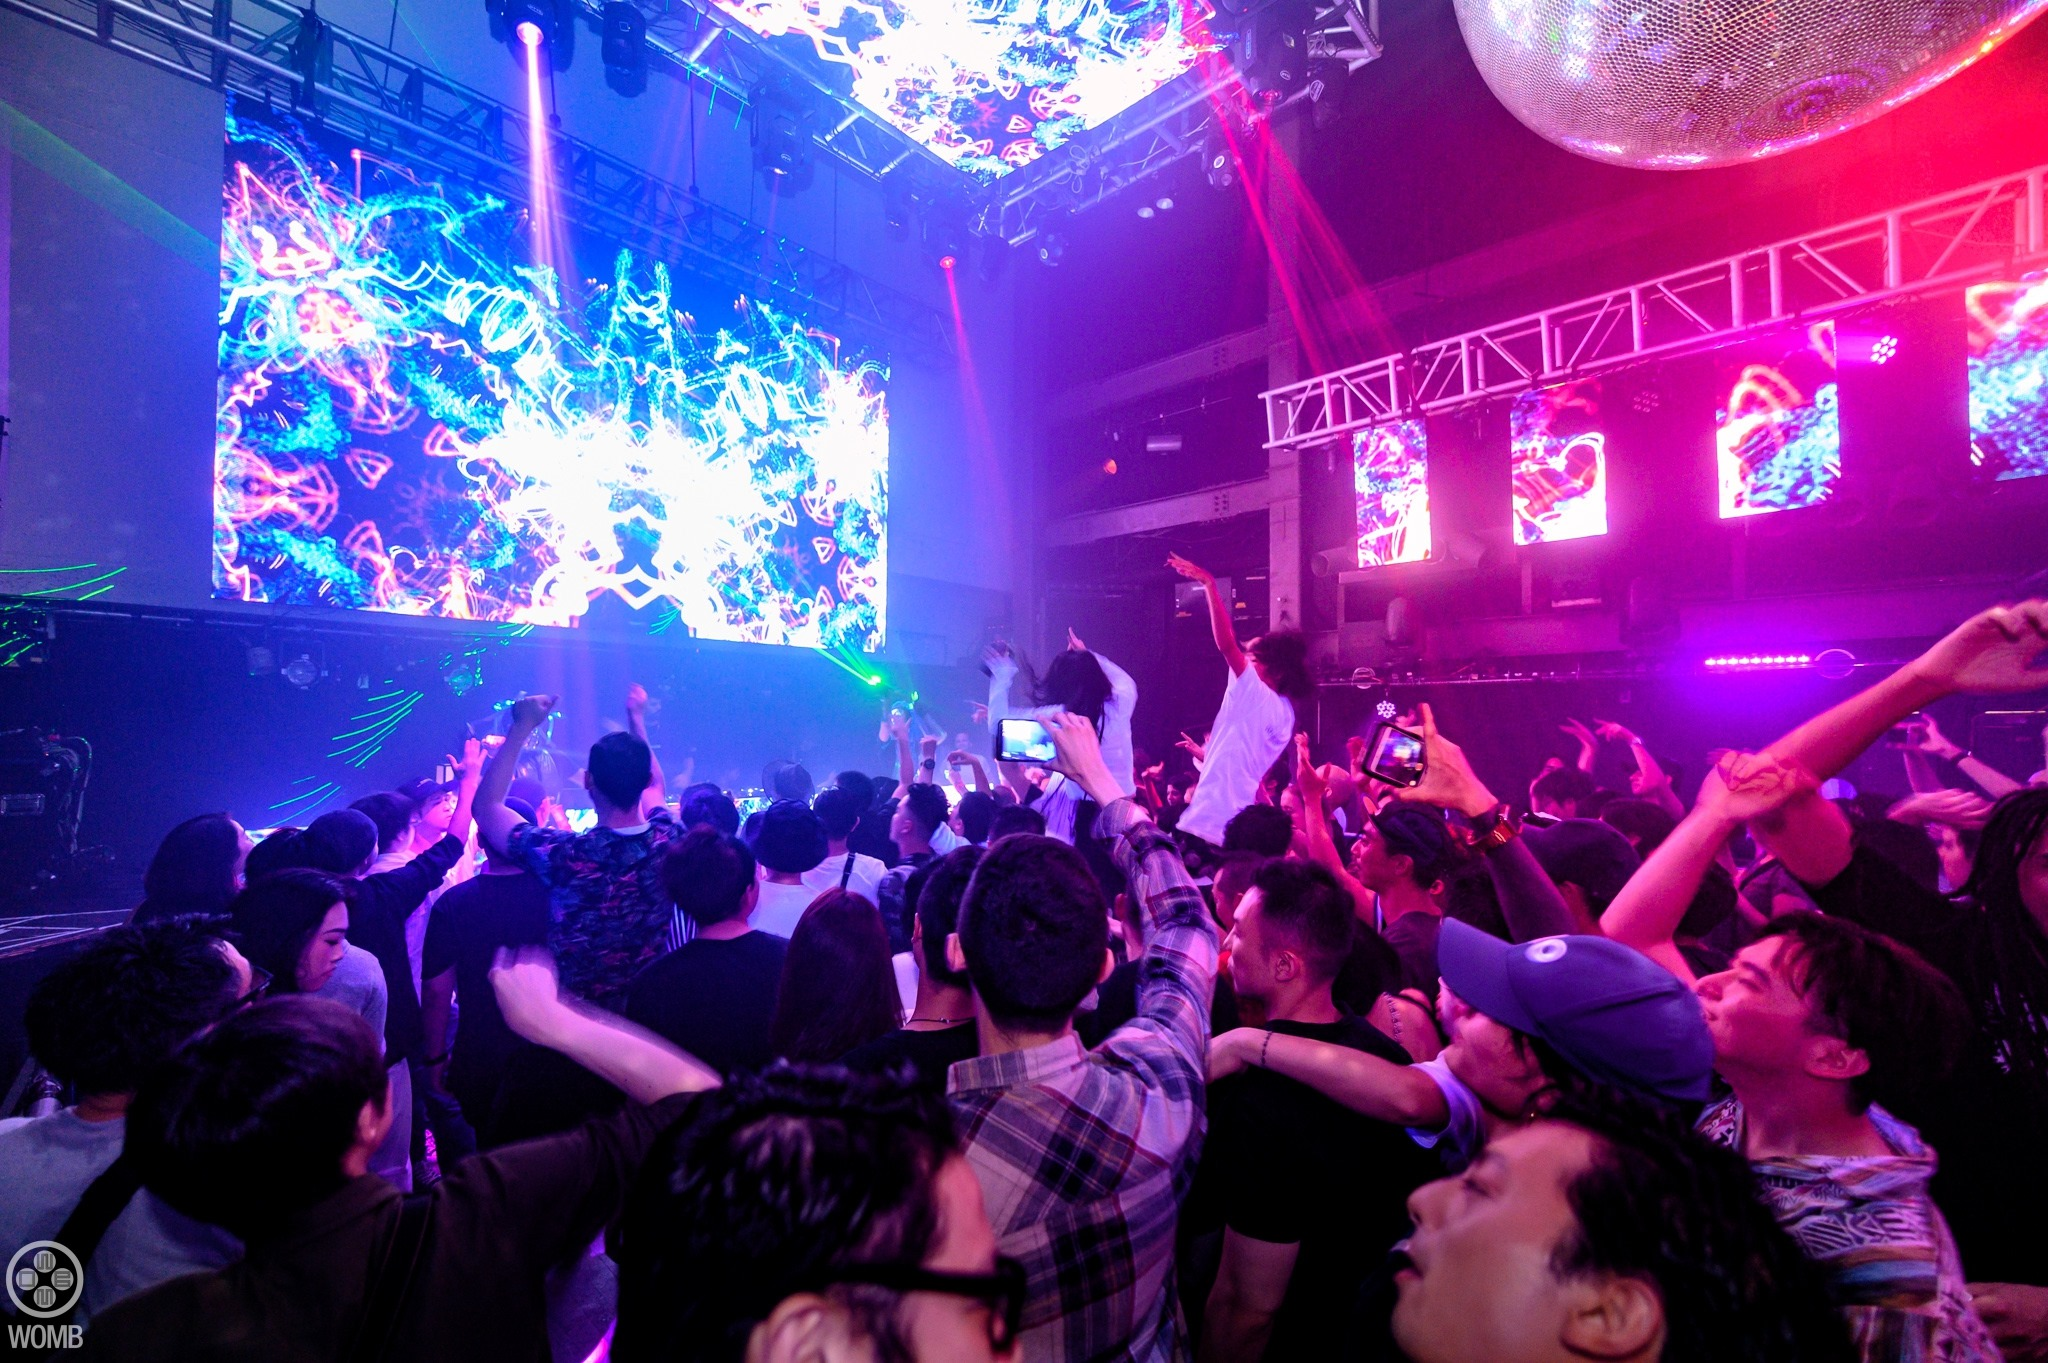 Club Womb Tokyo - Top Clubs in Japan